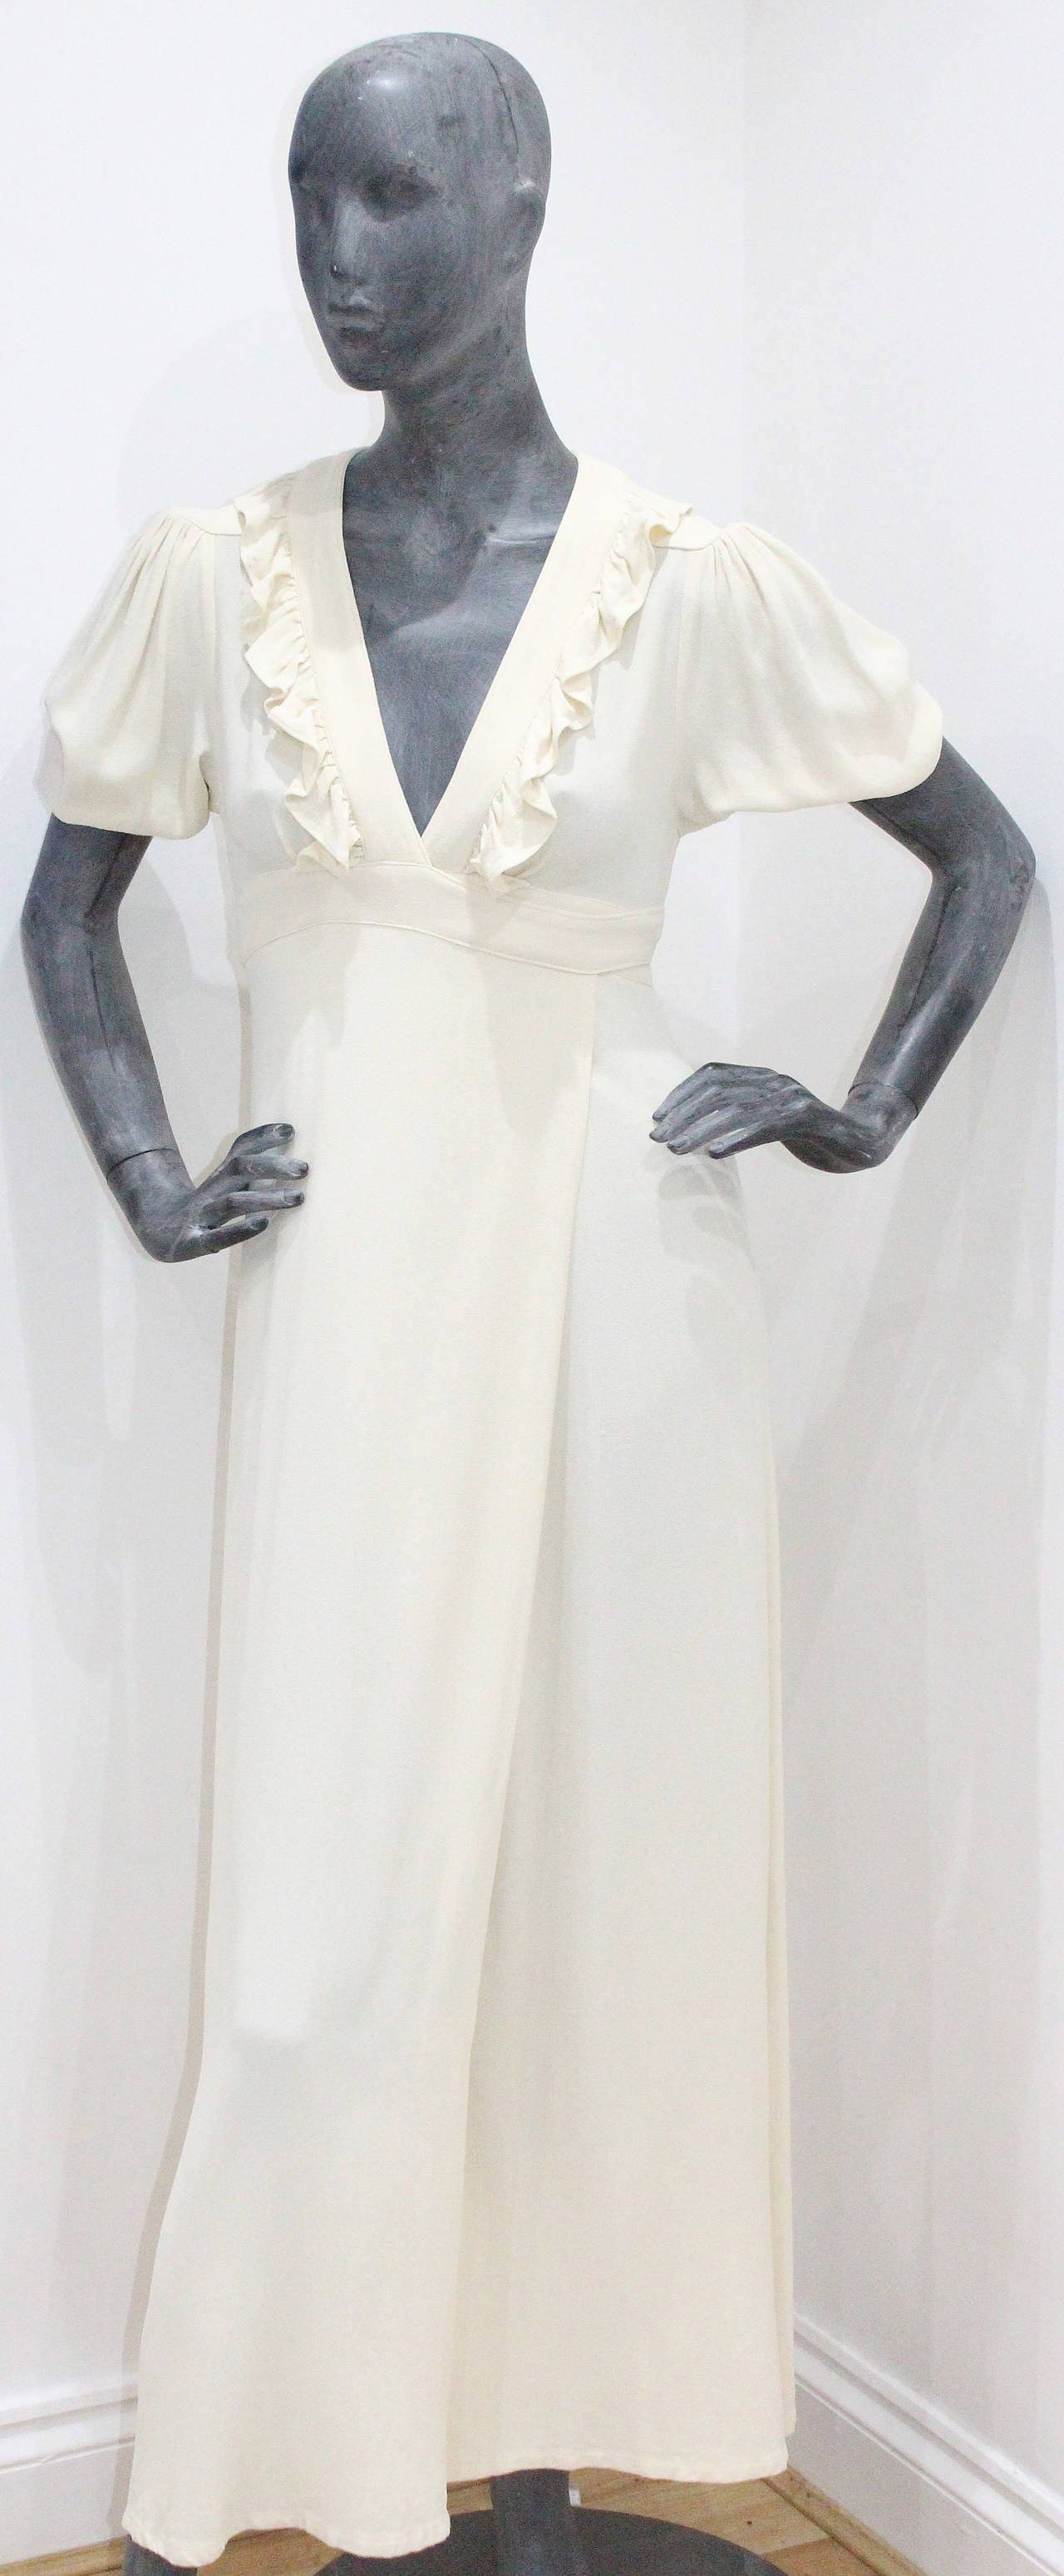 A beautiful ivory wrap dress by Ossie Clark. This design is timeless and chic. The dress has a v-neck plunge with a ruffled trim, a wrap design which ties as a bow to the rear, a central leg slit, structured 1940s inspired shoulder and draped puff